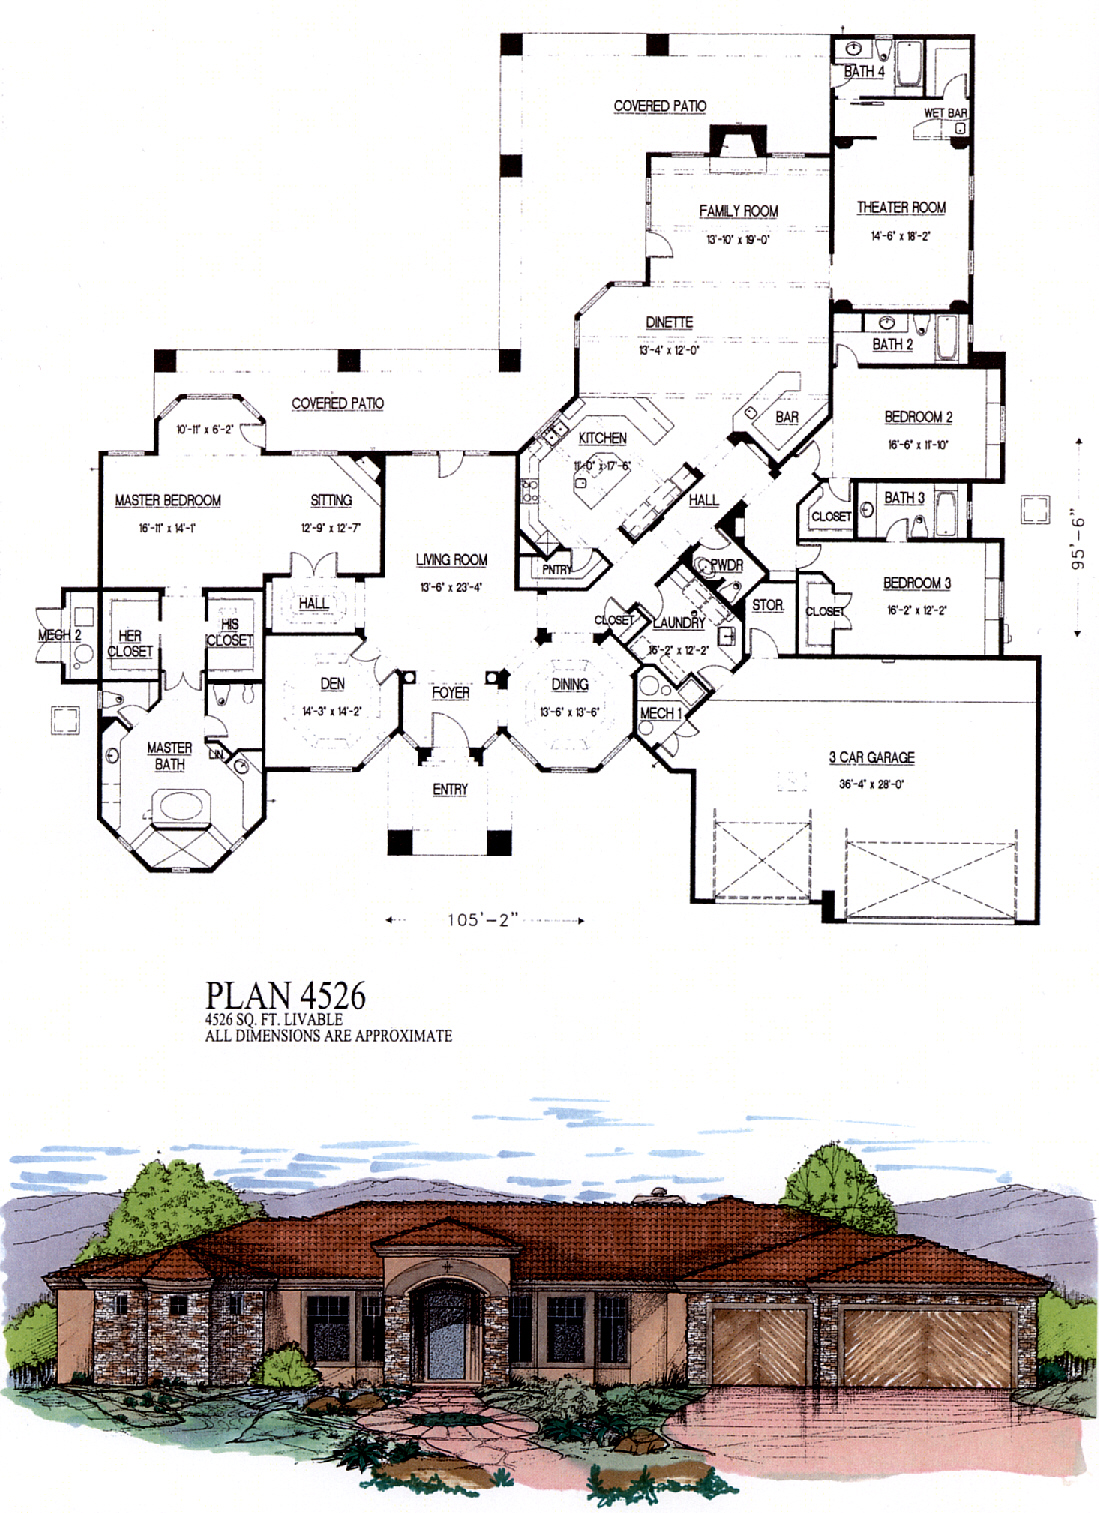 6000 sq ft house plans